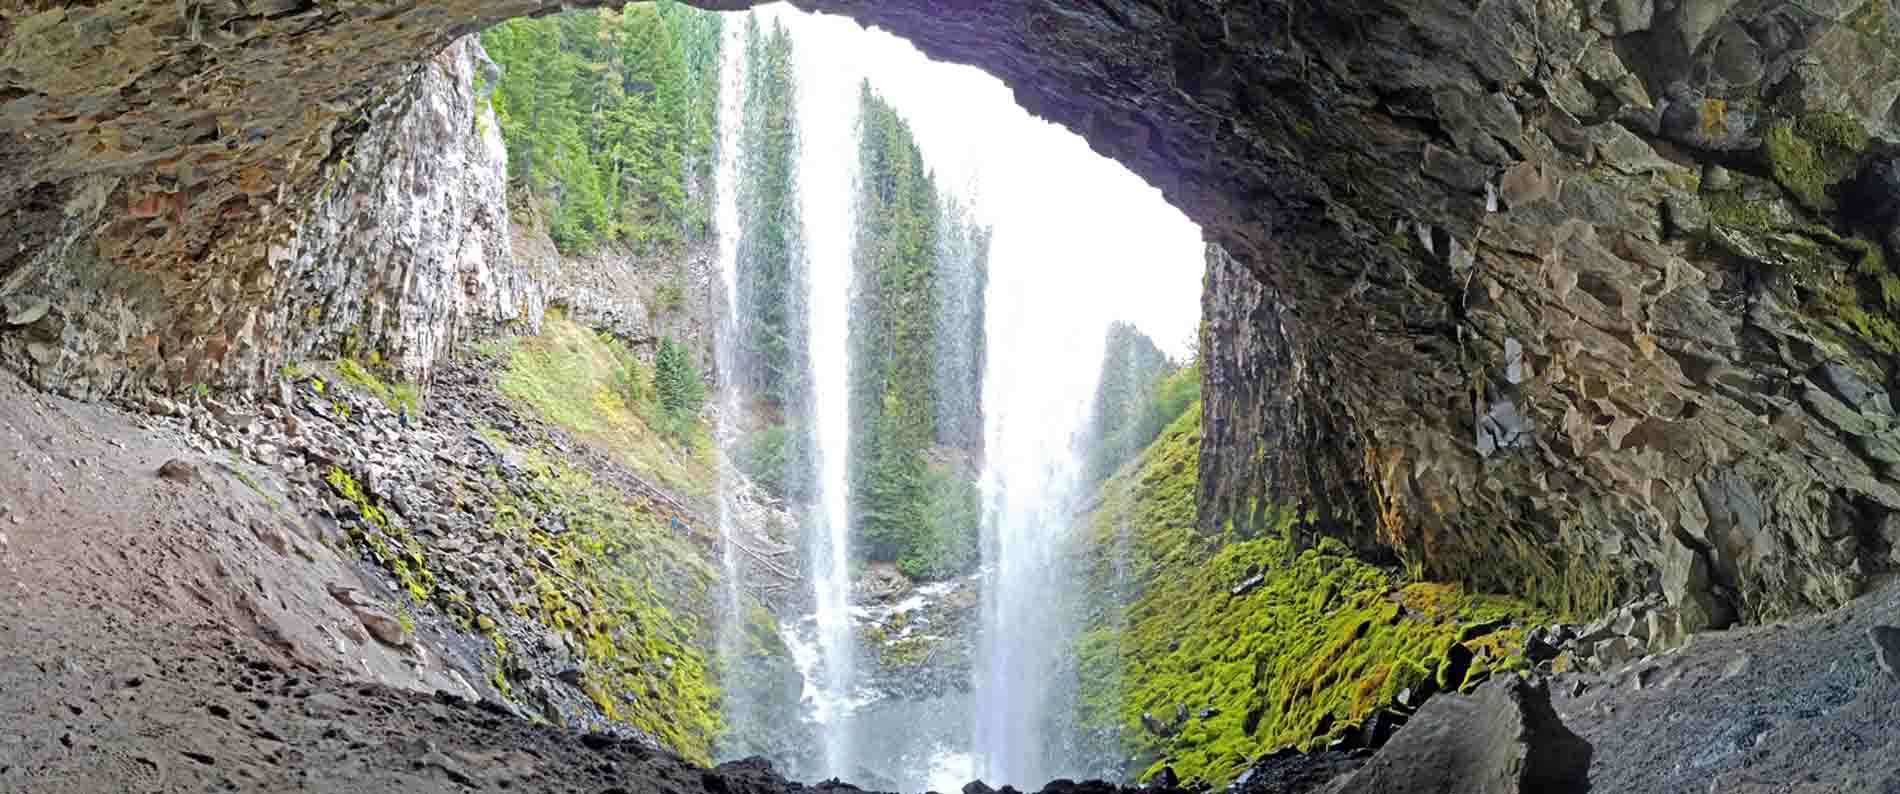 The view from behind the falls.  Photo: (c) Barb Ayers, DogDiary.org